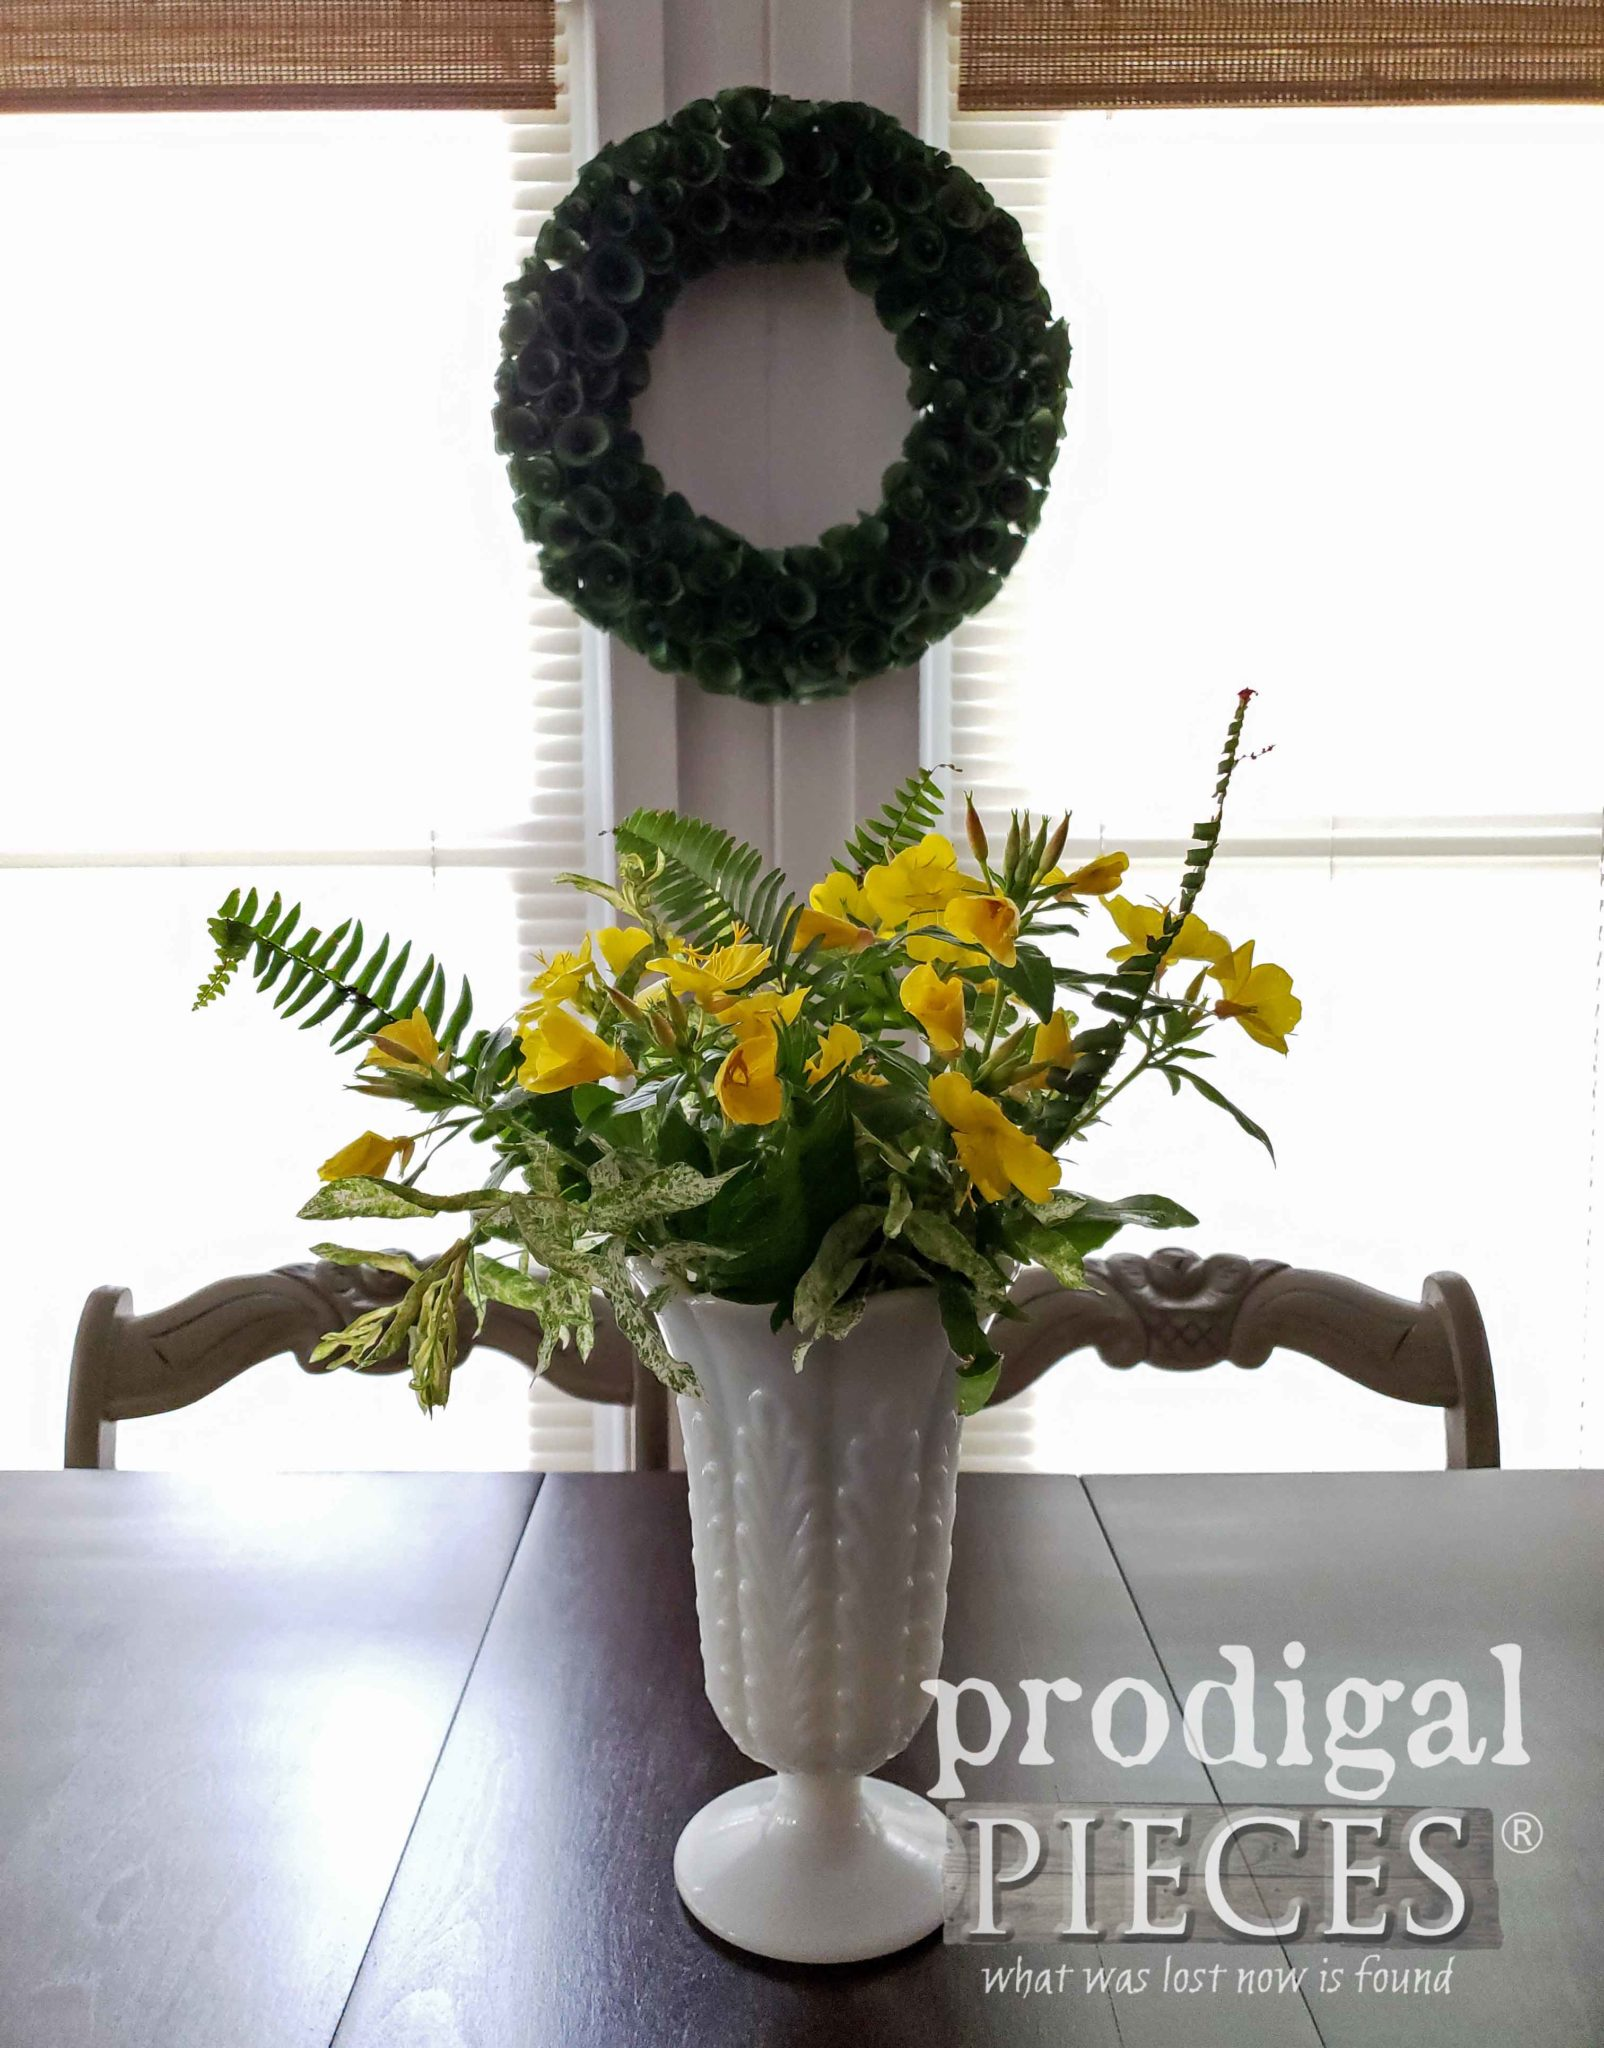 Vintage Fluted Milk Glass Vase with Floral Arrangement by Prodigal Pieces | prodigalpieces.com